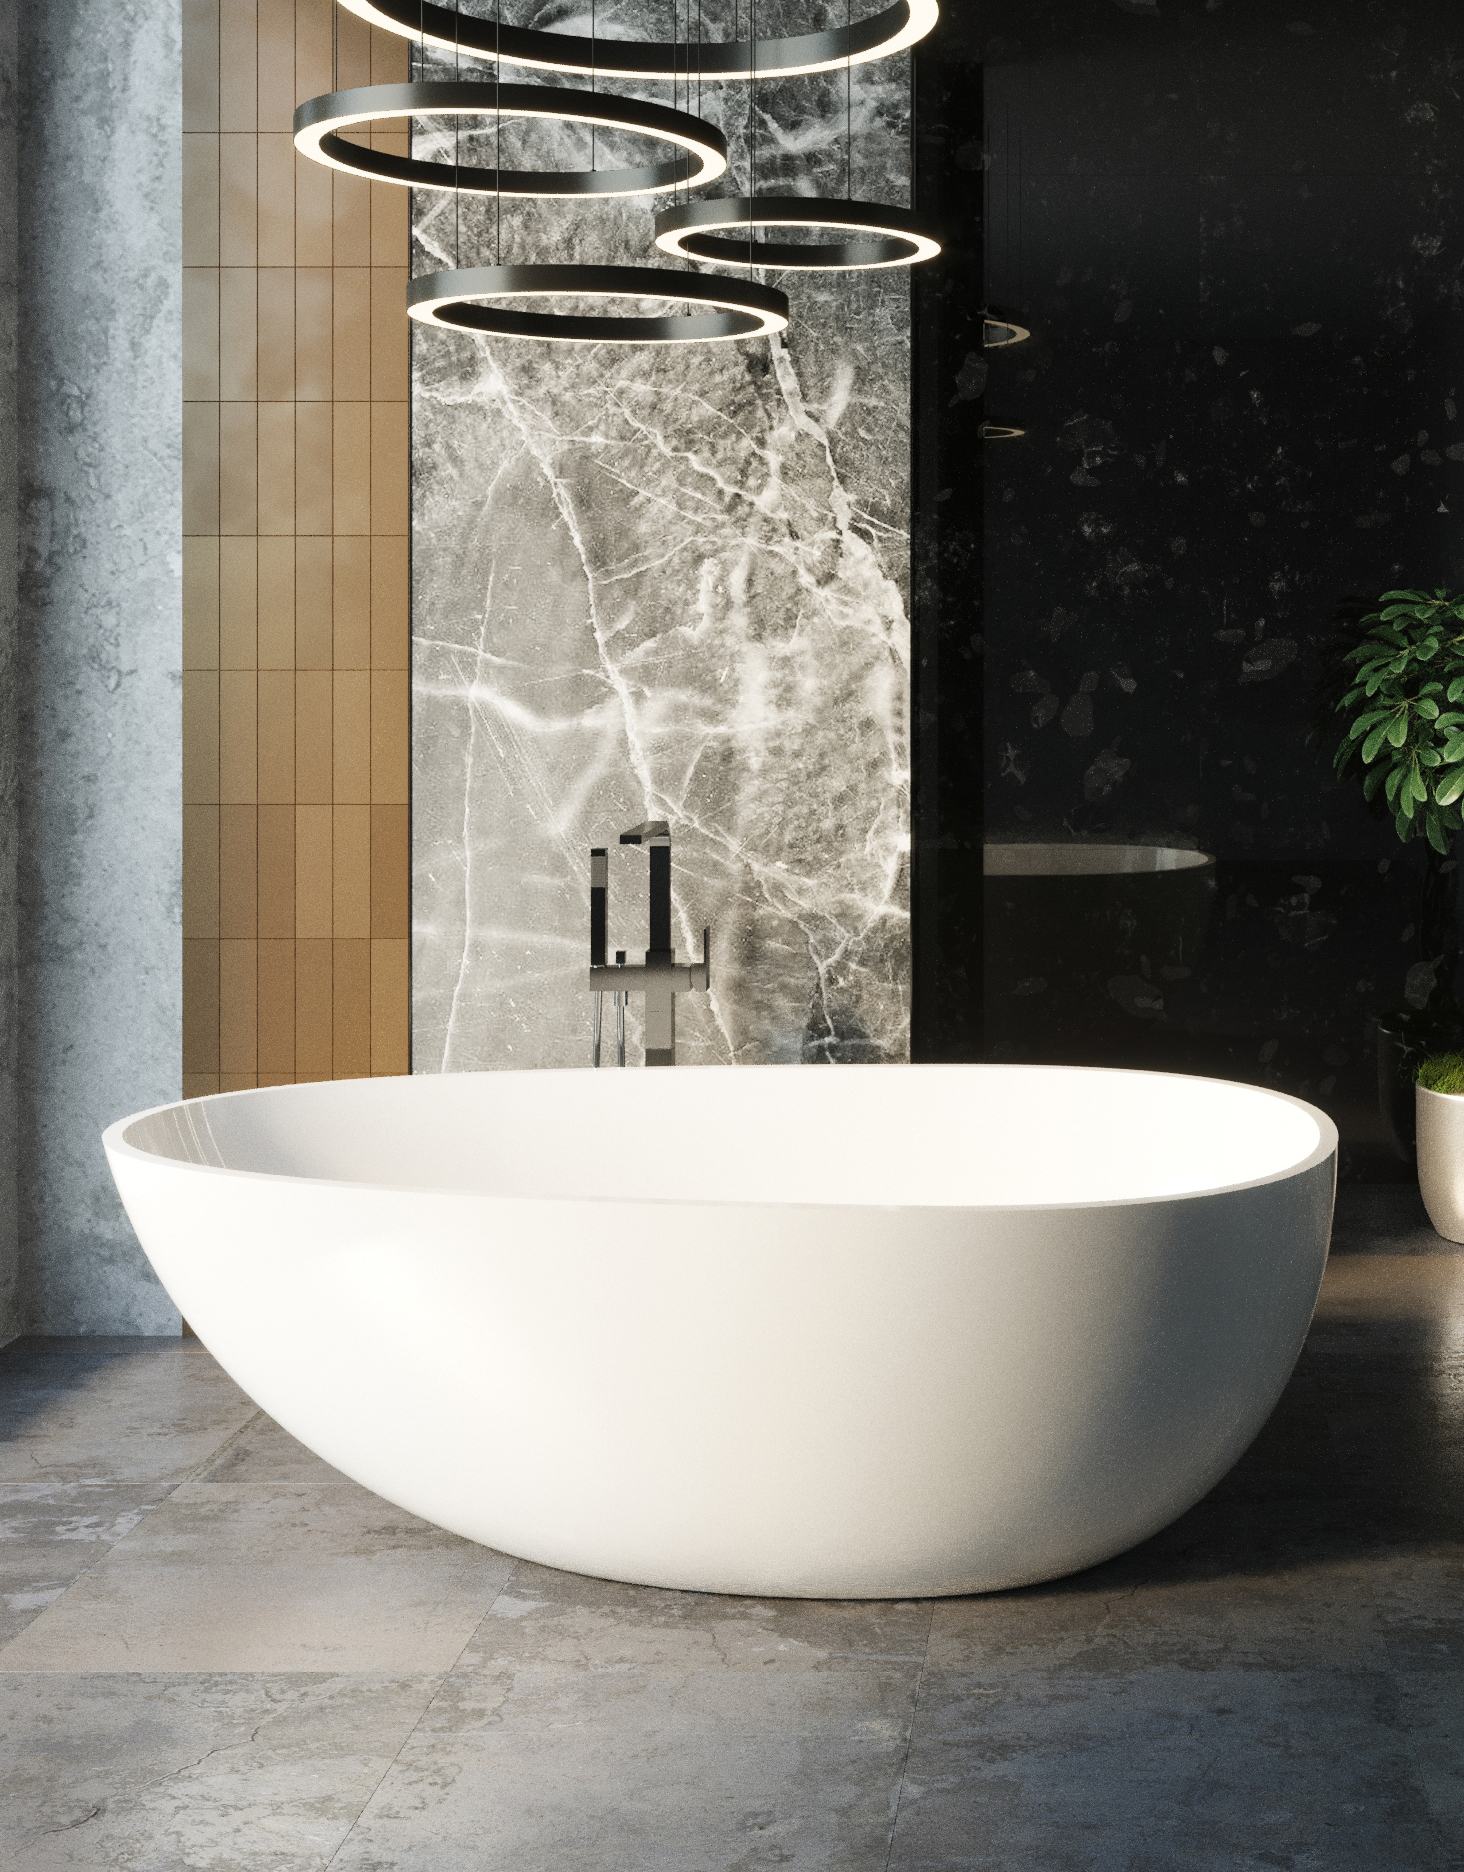 67 Large Freestanding Bathtub